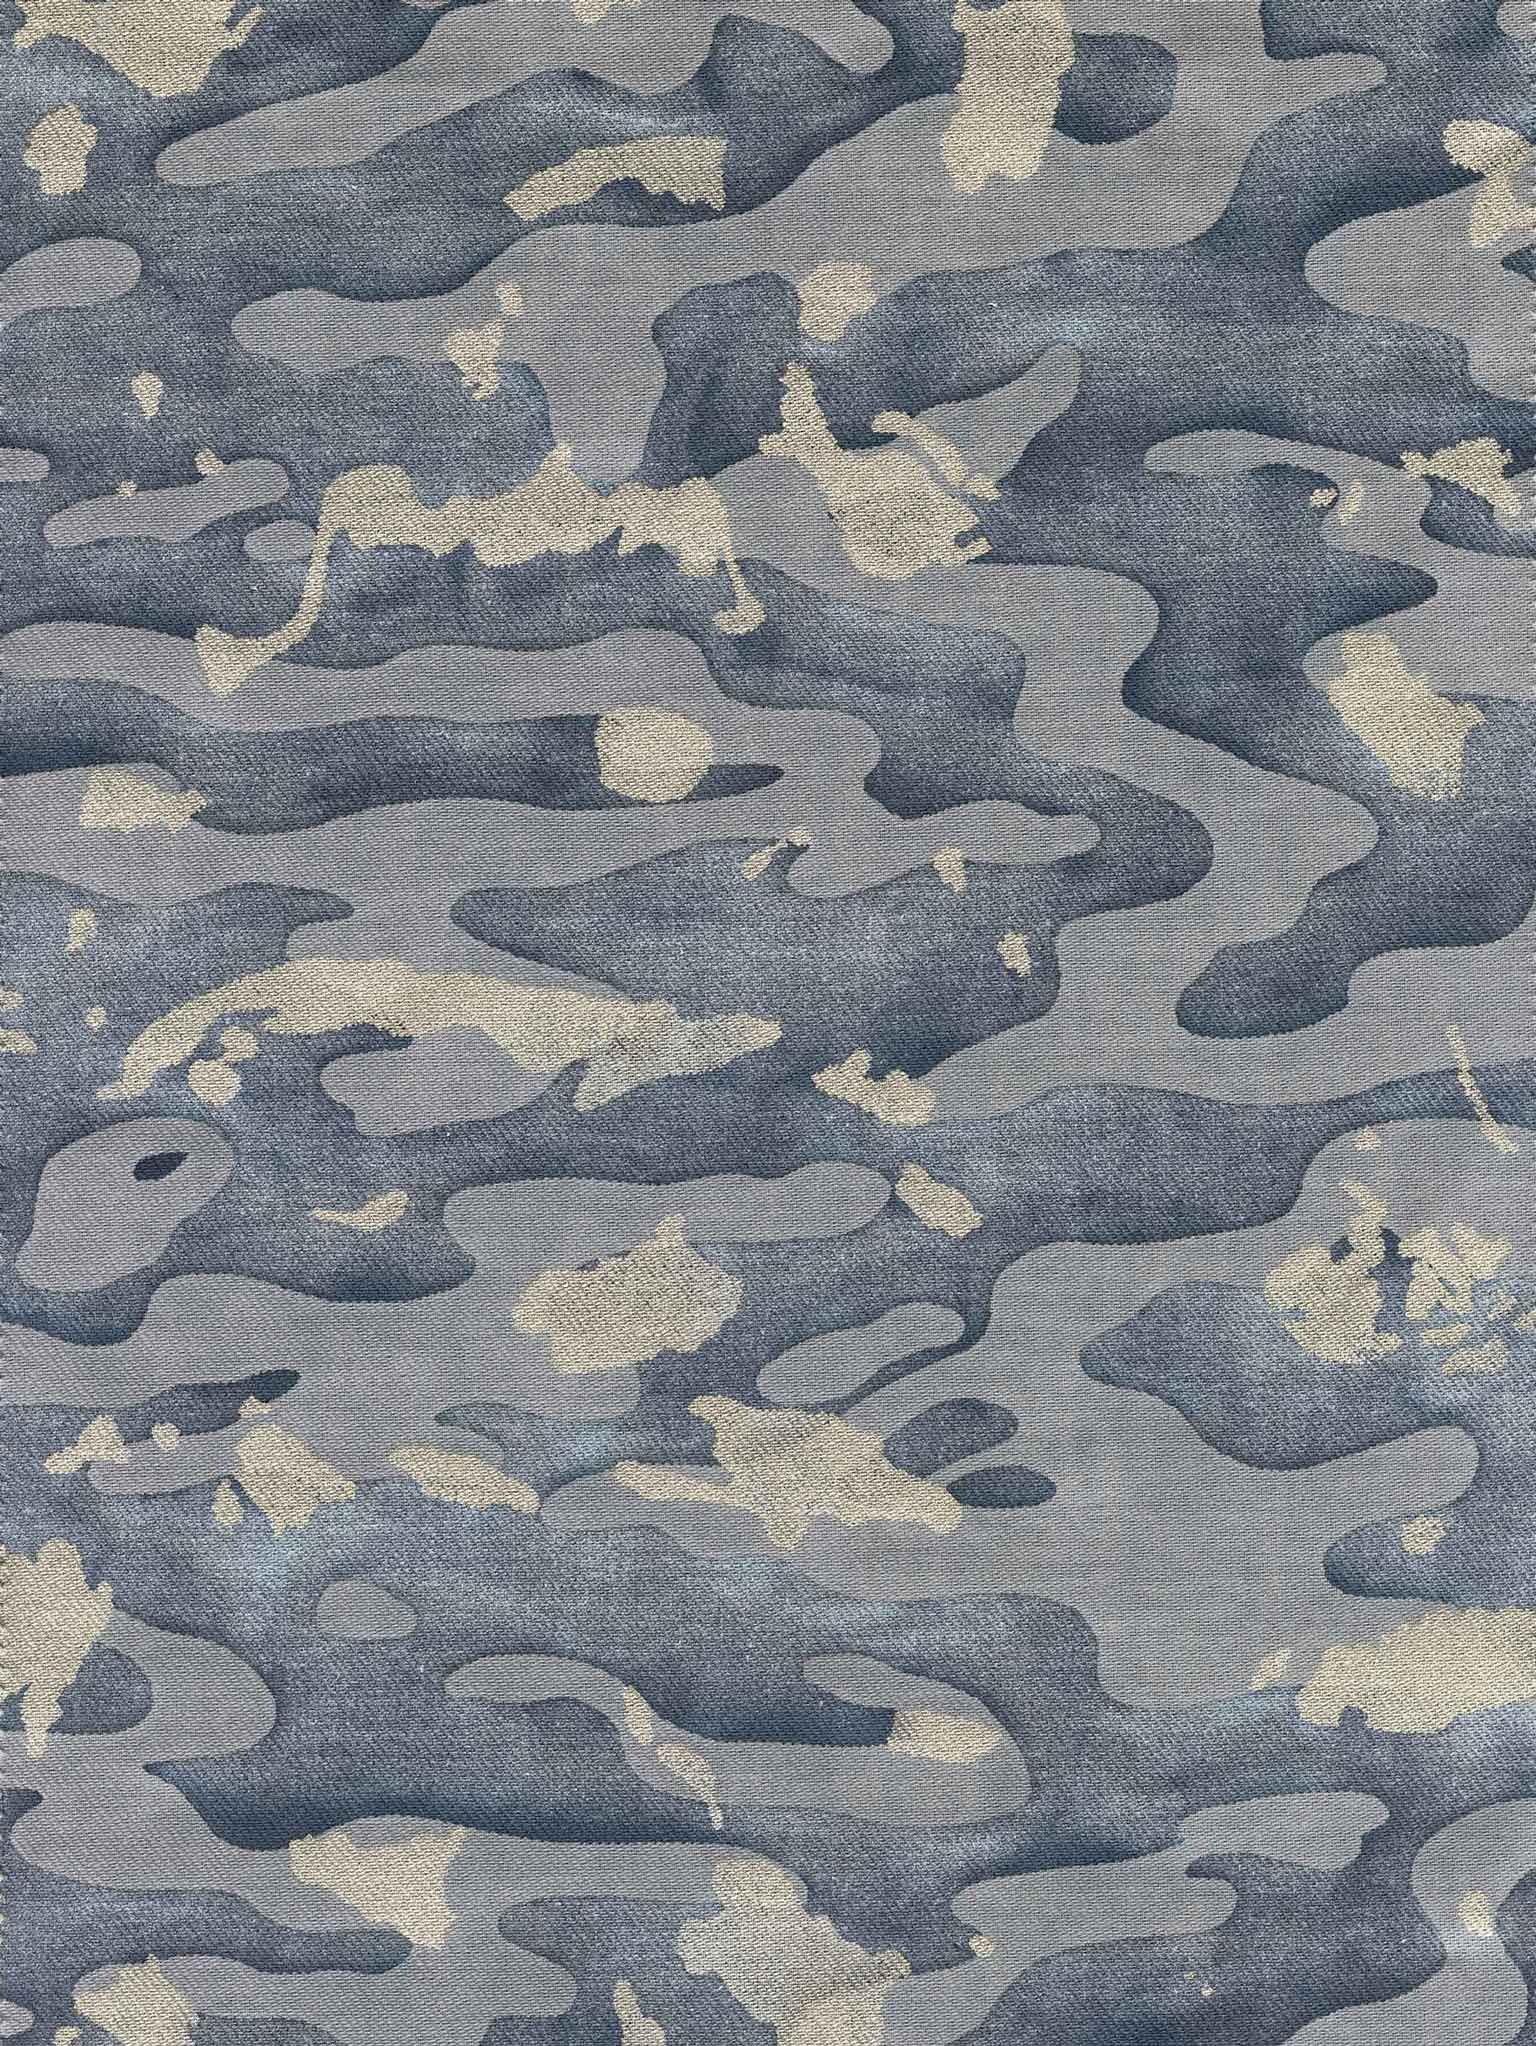 A-Venetian-interpretation-of-traditional-camouflage-Fortunyås-Camo-pattern-is-created-from-phot-wallpaper-wpc5801896